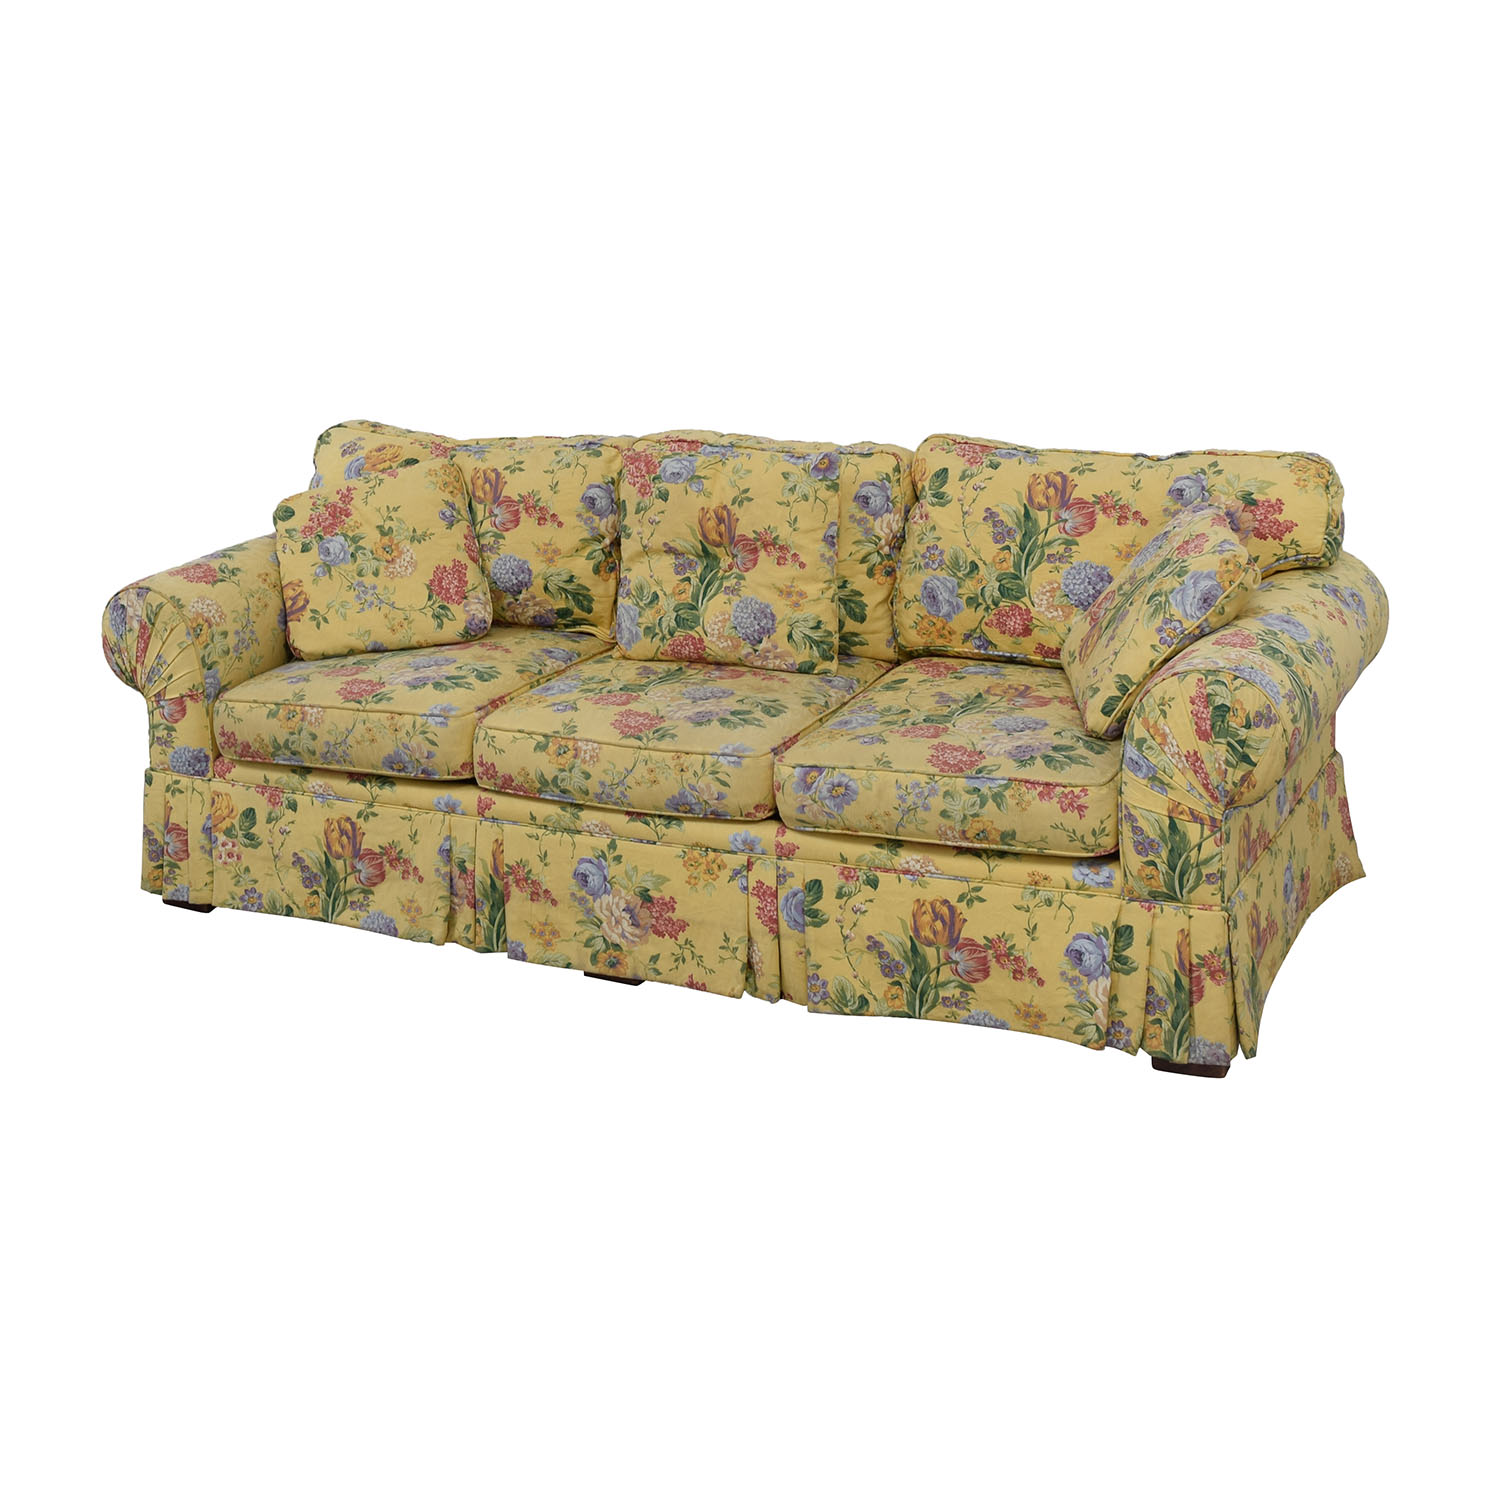 54% OFF Alexvale Alexvale Yellow Floral Two Cushion Couch Sofas